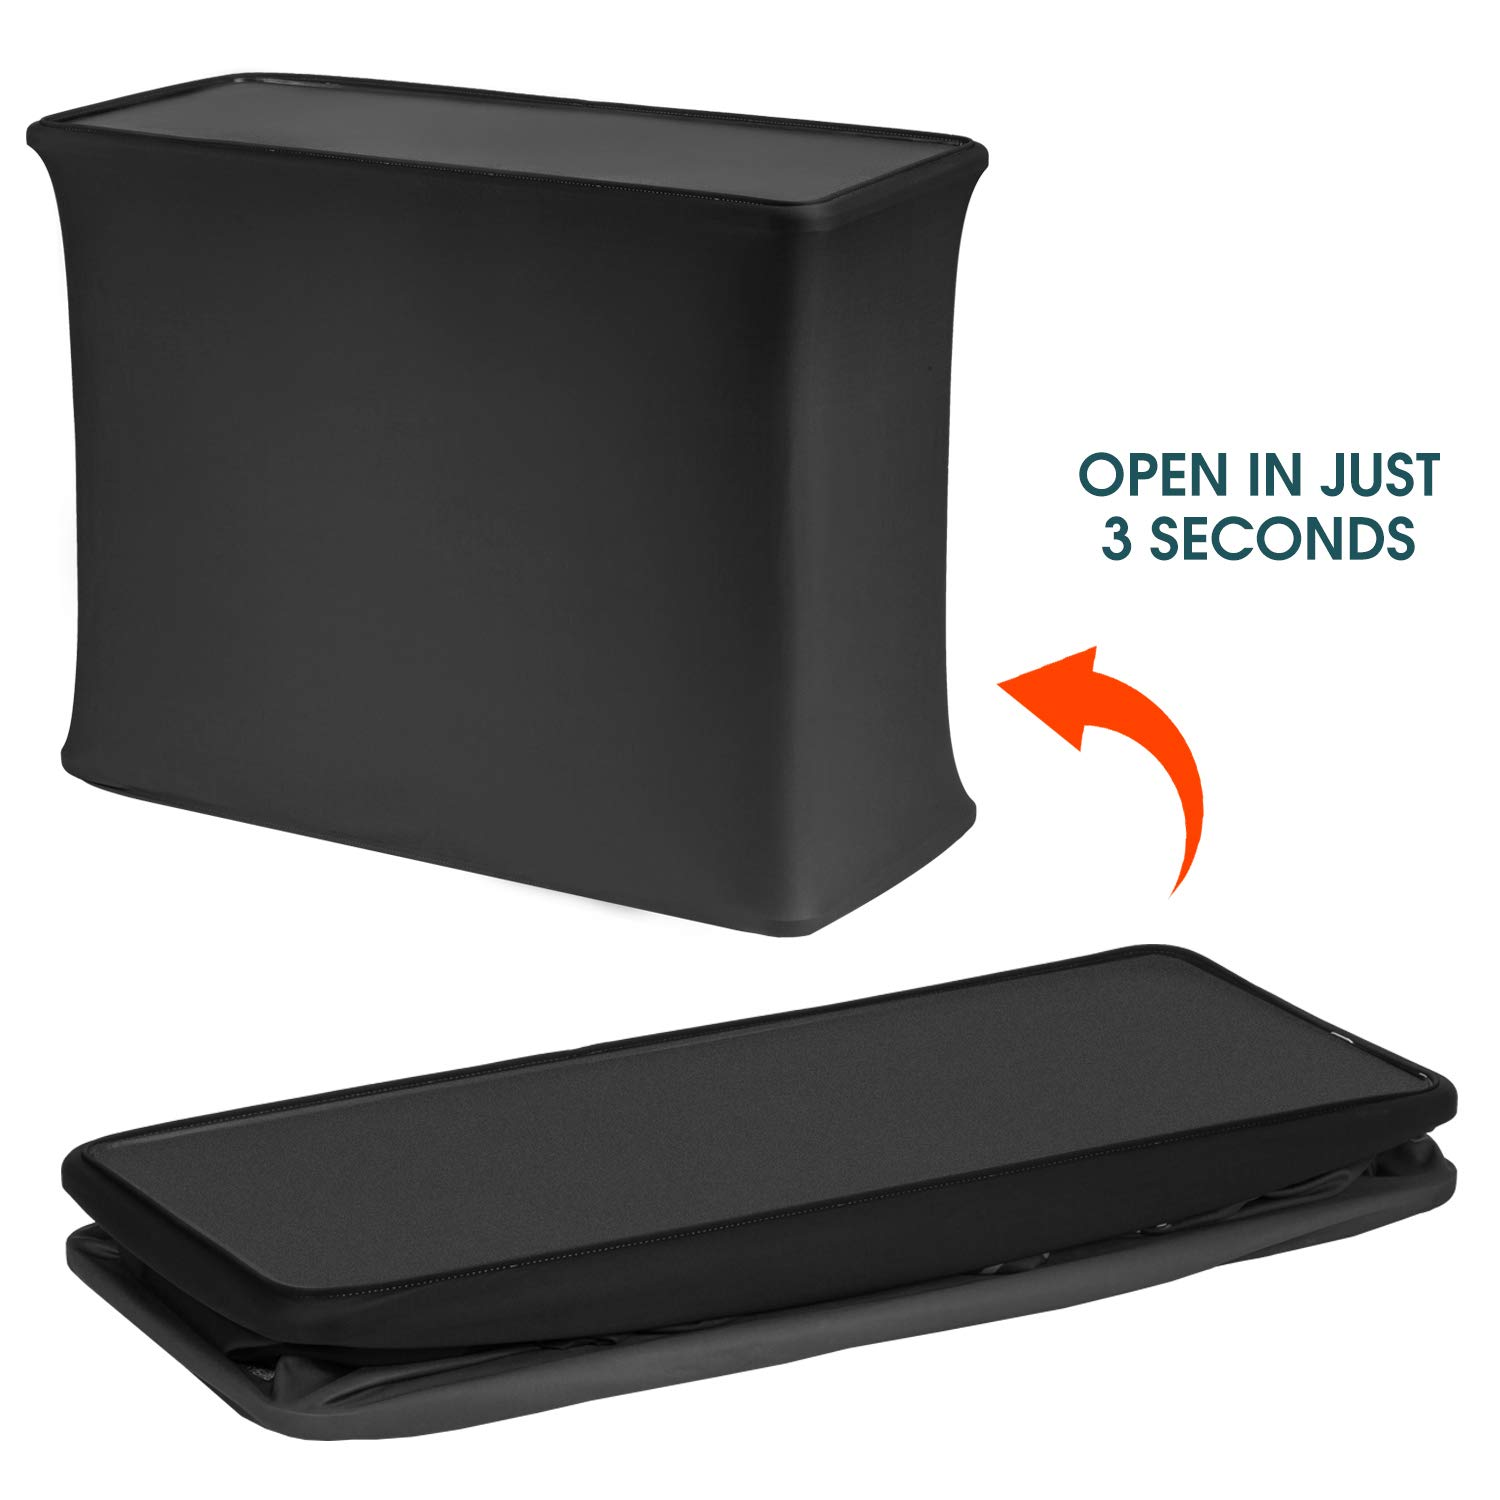 Portable Pop Up Display Stand Podium Counter Table Stand Promotion Retail Trade Show Display with Bag 10 Seconds Installation (Black, A) by APL Display